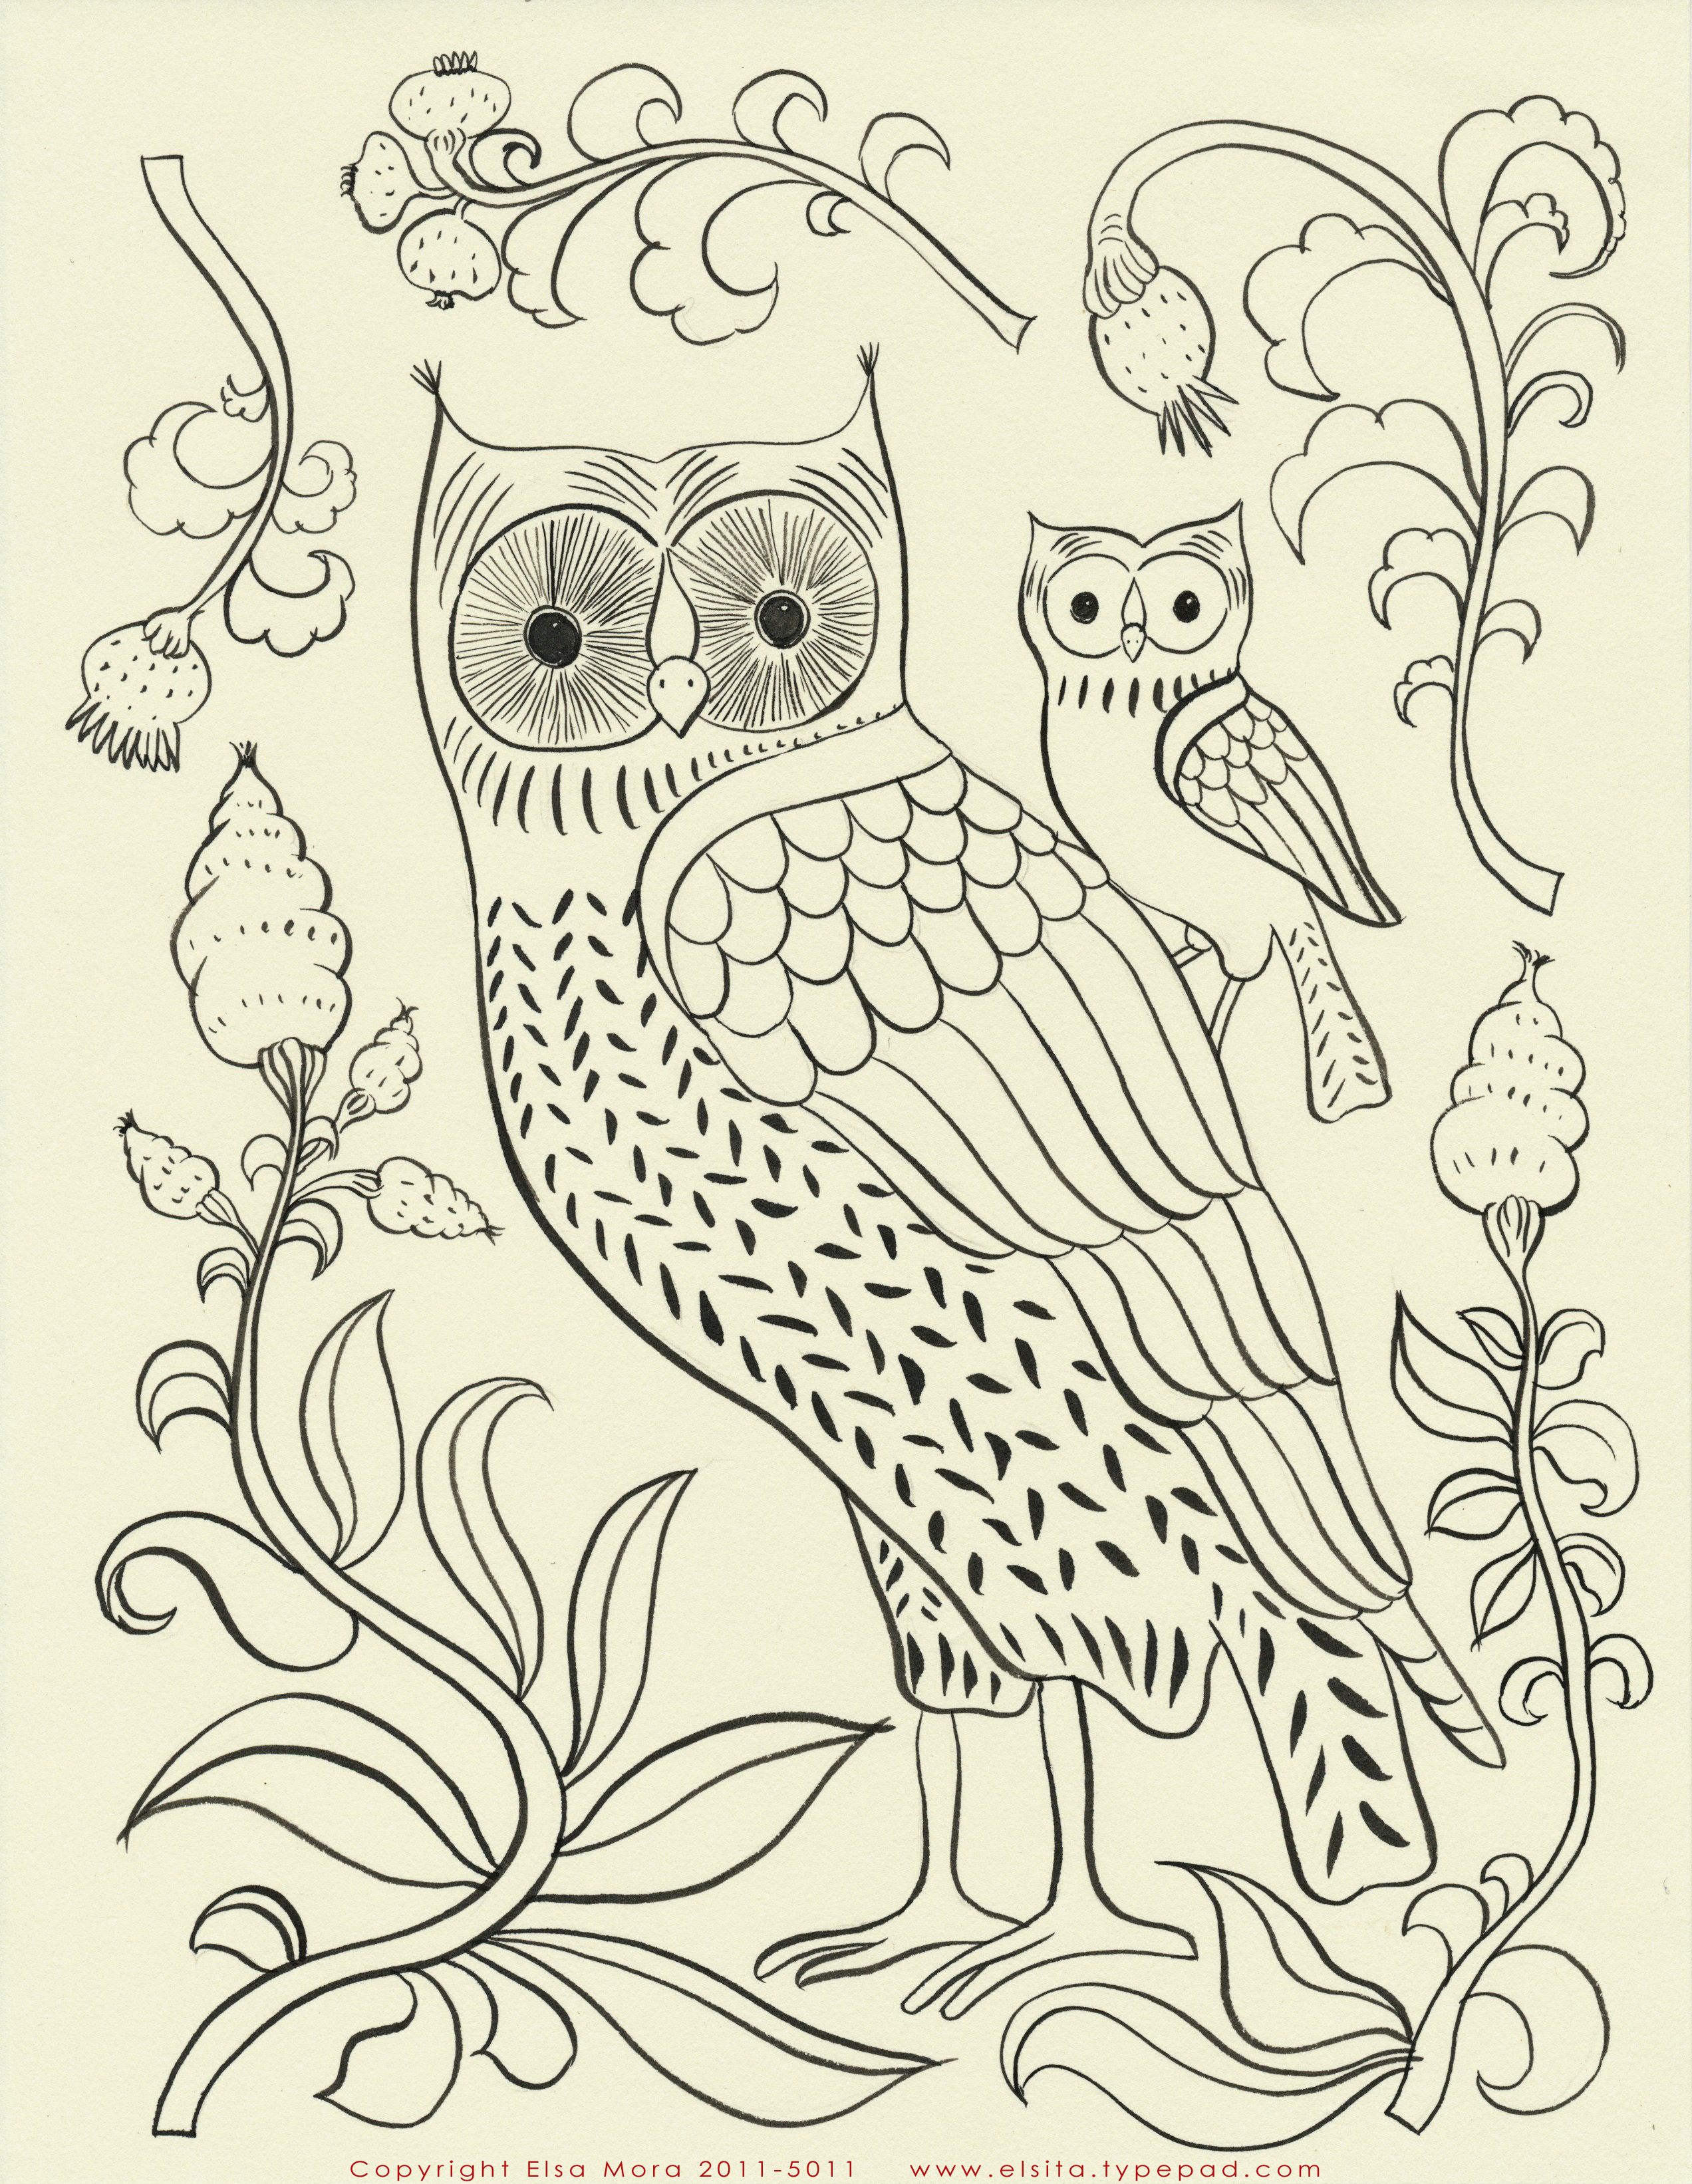 Elsa mora two free embroidery patterns for you owls embroidery pattern bankloansurffo Gallery